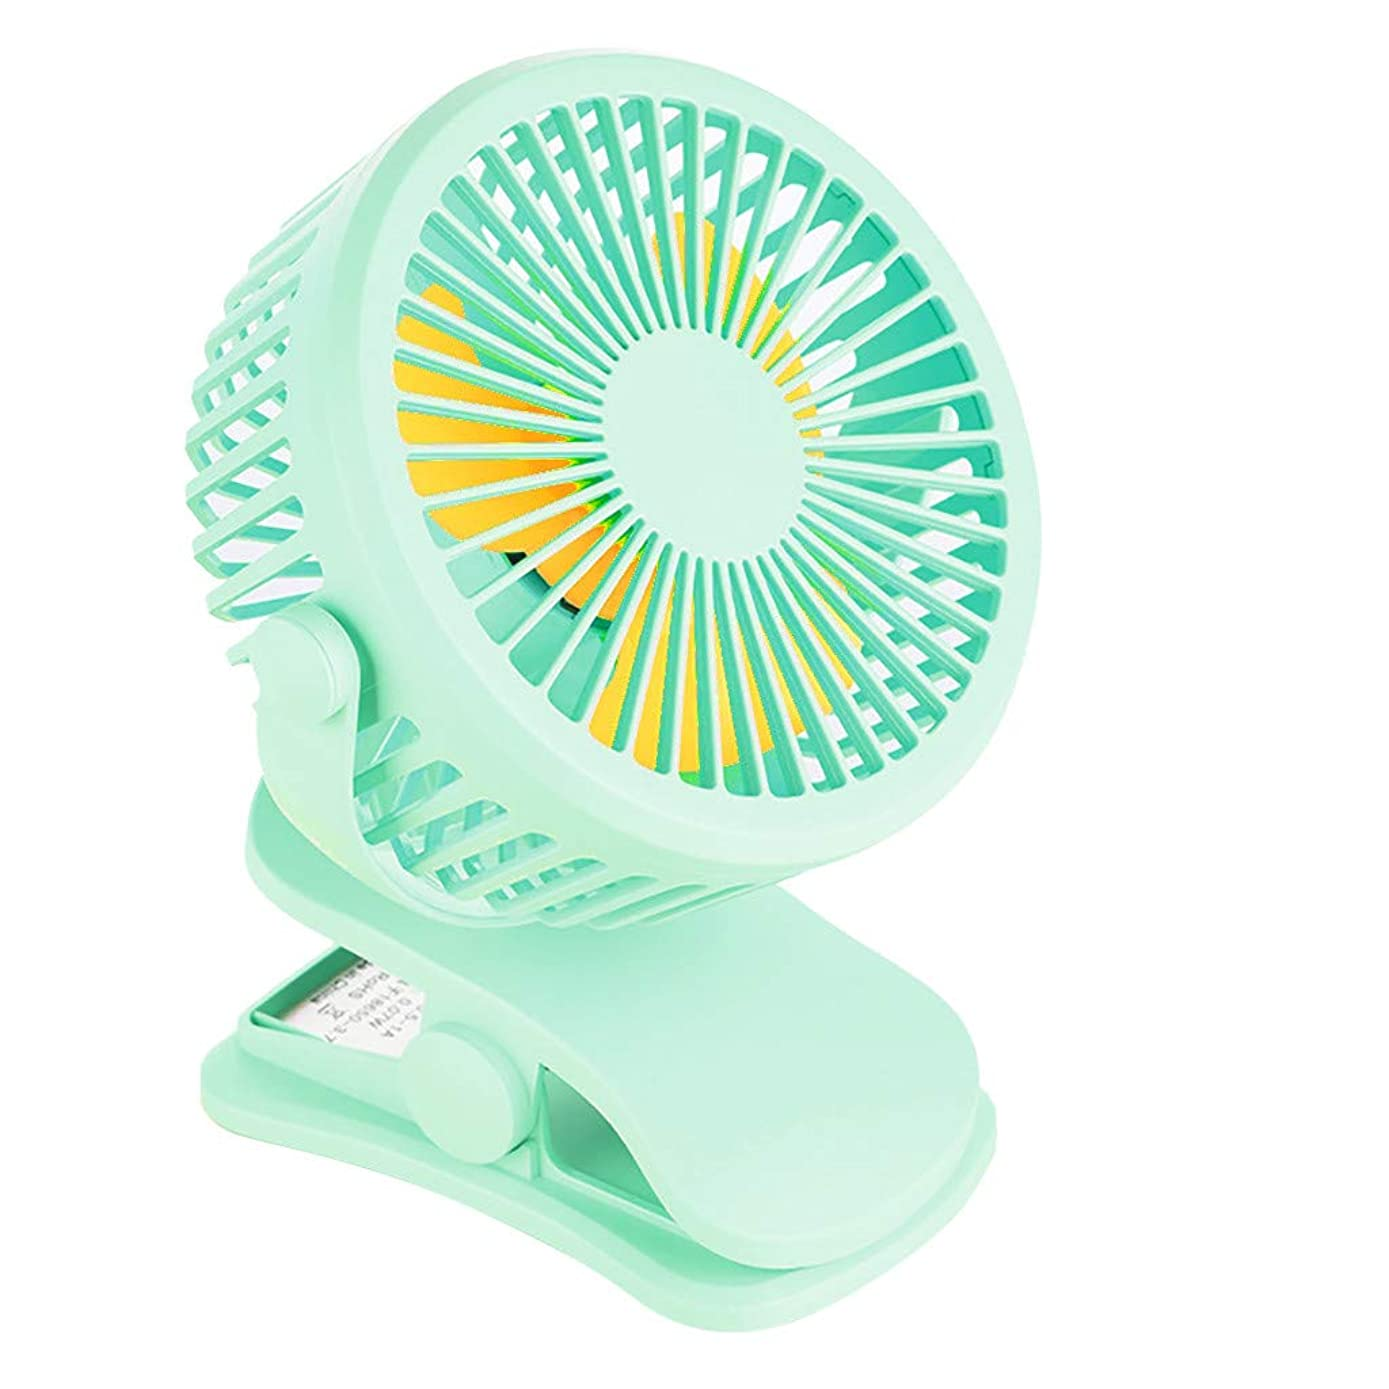 Yamart Battery Operated Clip on Stroller Fan - Mini Portable 360° Rotatable Desk Fan with Rechargeable Battery Powered Fan for Baby Stroller, Outdoor Activities